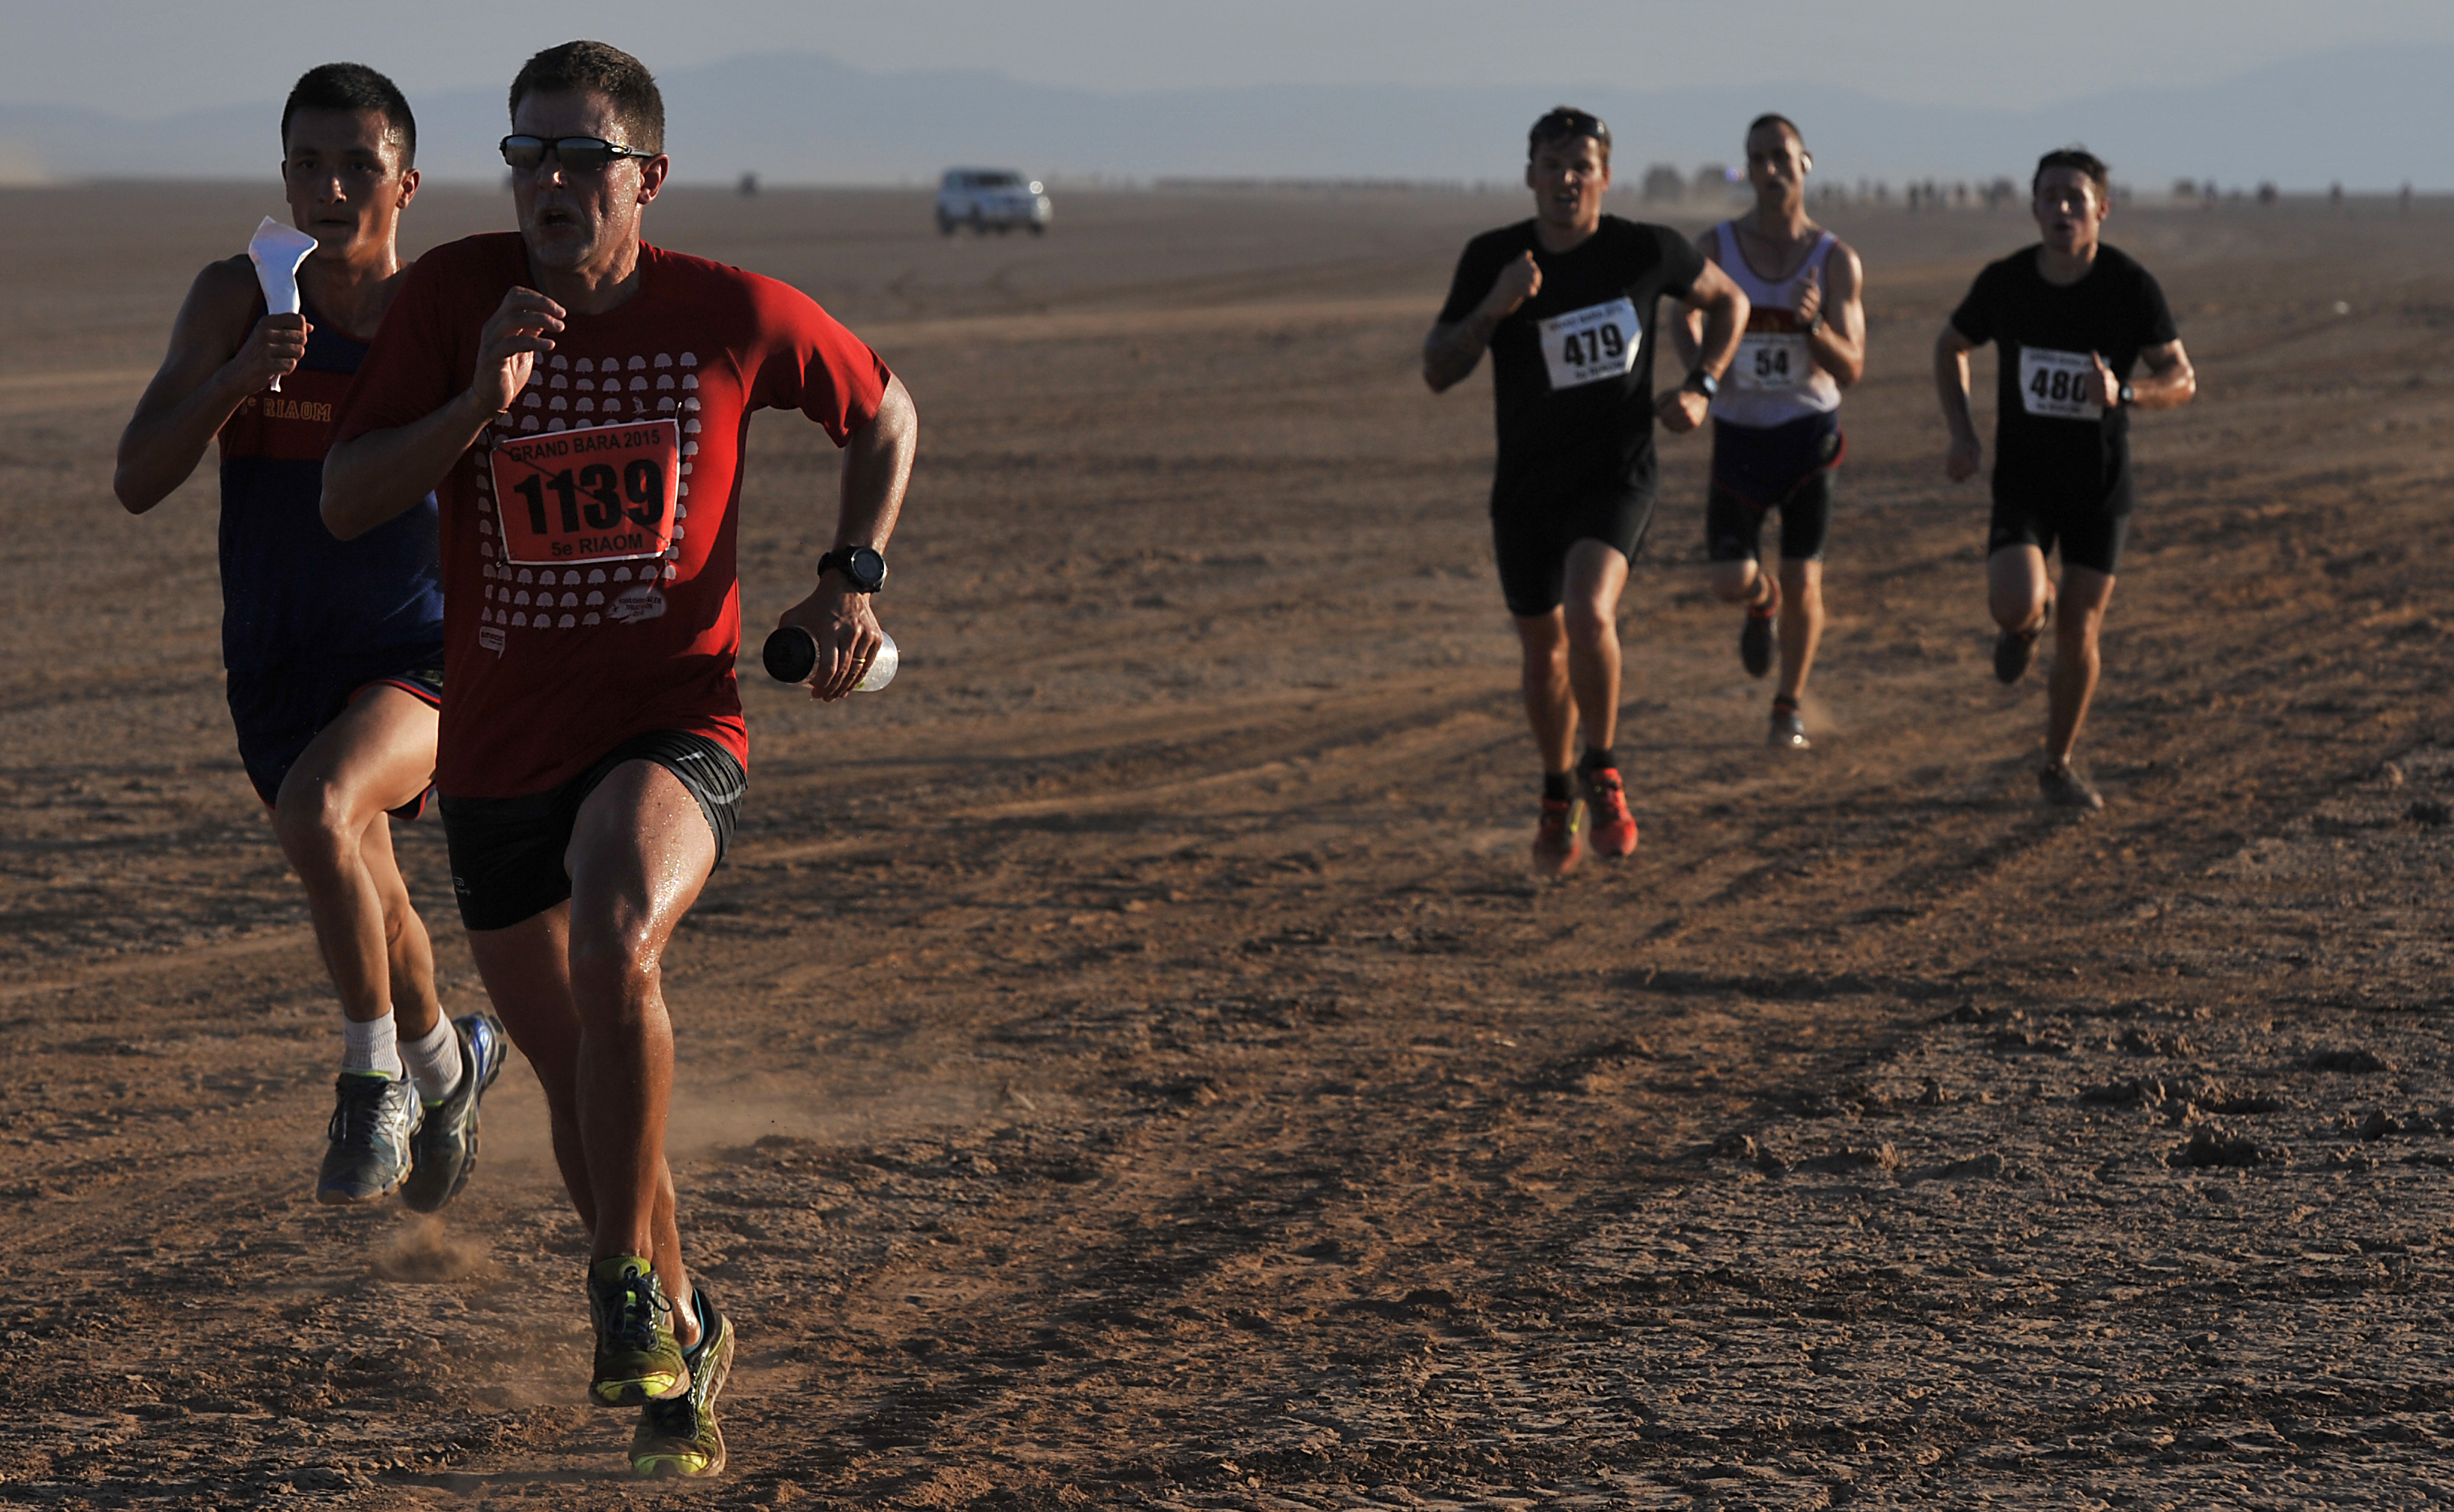 Runners sprint for the finish line in the Grand Bara Desert during the Annual Grand Bara 15K race Dec. 17, 2015, in Djibouti. More than 1,500 service members and civilians representing France, Djibouti, U.S., Japan, Germany and others participated in the race. (U.S. Air Force photo by Tech. Sgt. Dan DeCook)